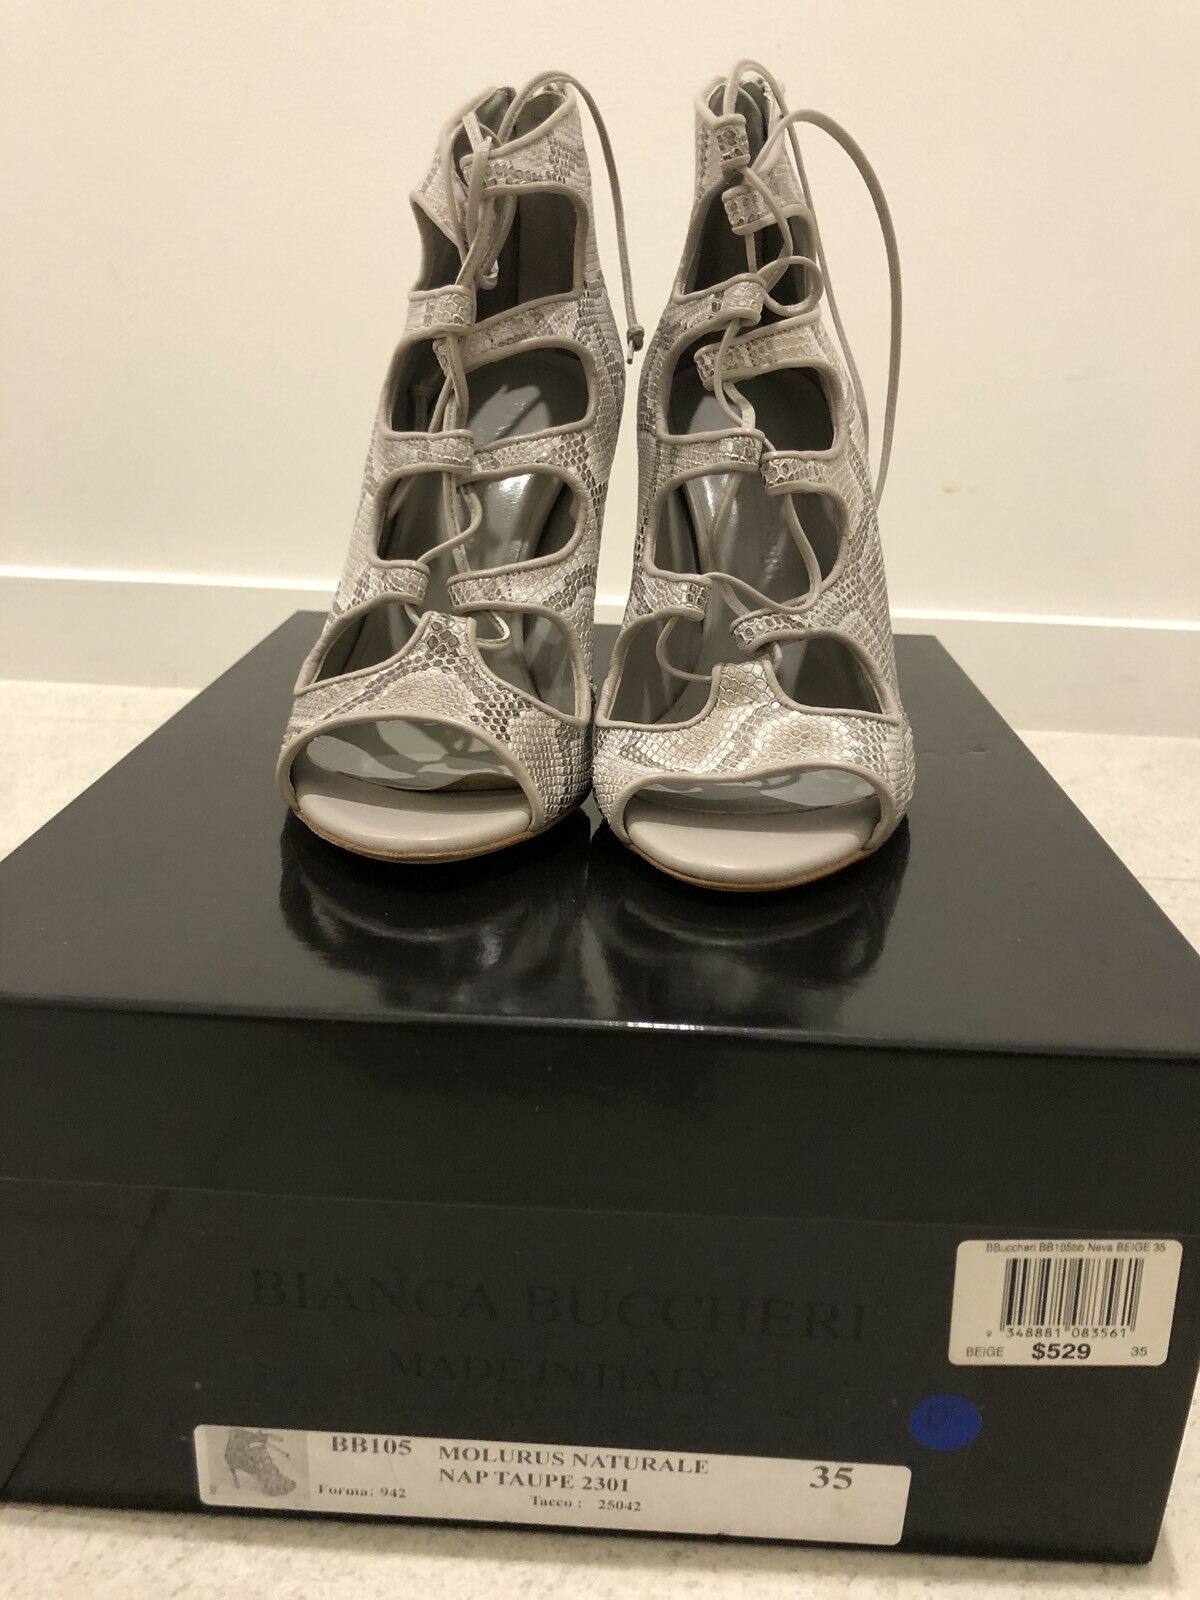 Brandnew Dolci Firme Boots  Bianca Buccheri Ankle Boots Firme  $529 0ef06e